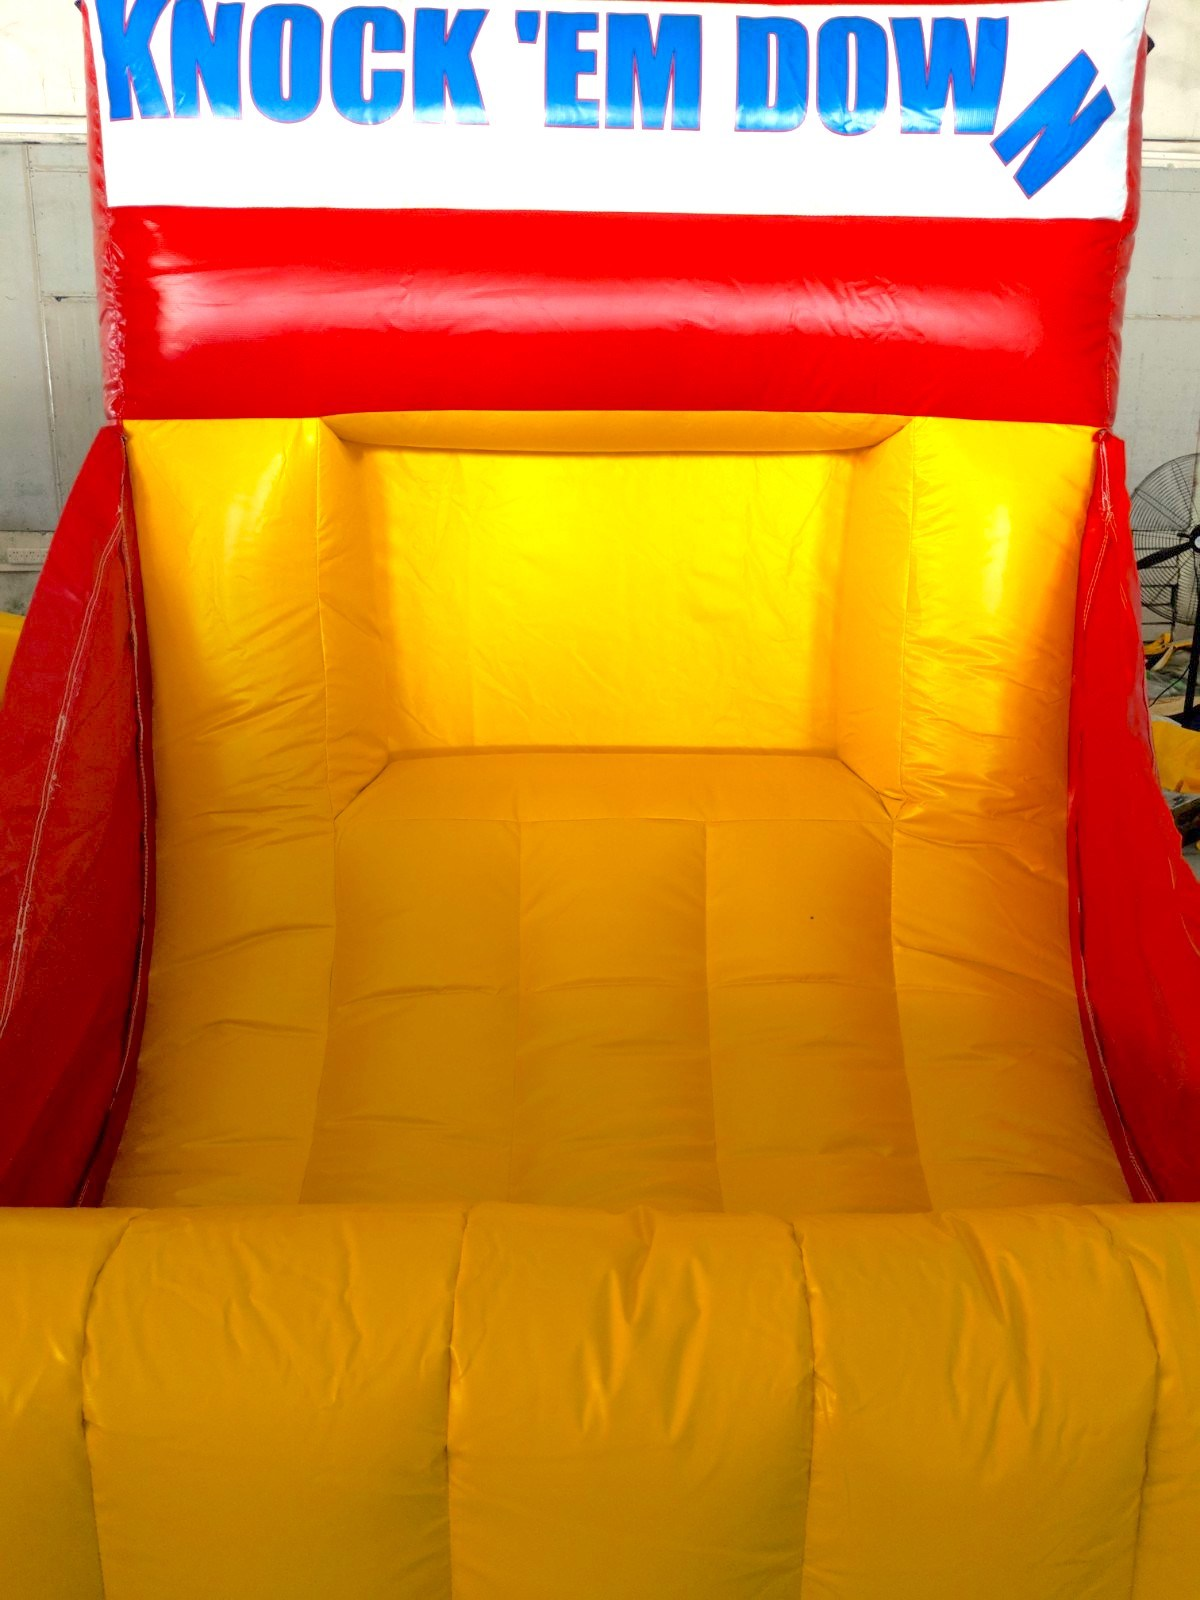 Just like your can toss this version is on an inflatable castle where an assistant is not needed as the ball will roll back to you!